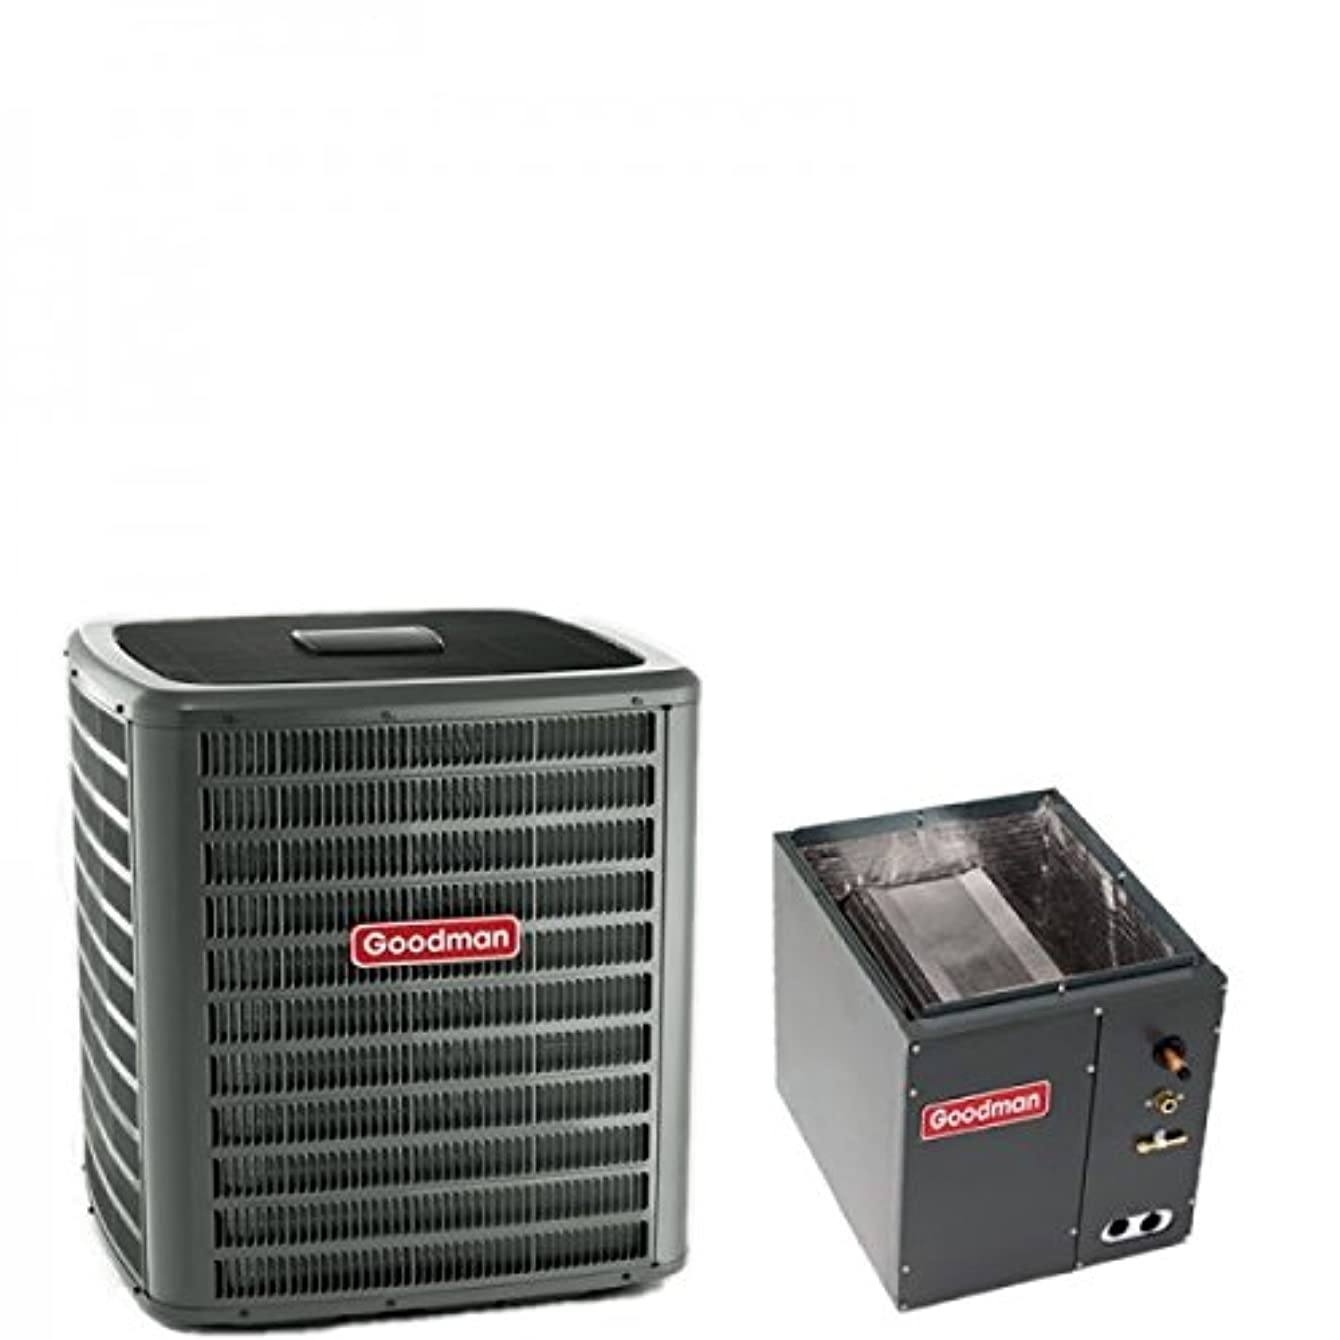 2.5 Ton Goodman 14 SEER R410A Air Conditioner Condenser with 14' Wide Vertical Cased Evaporator Coil (Yes, please add a TXV to my order)